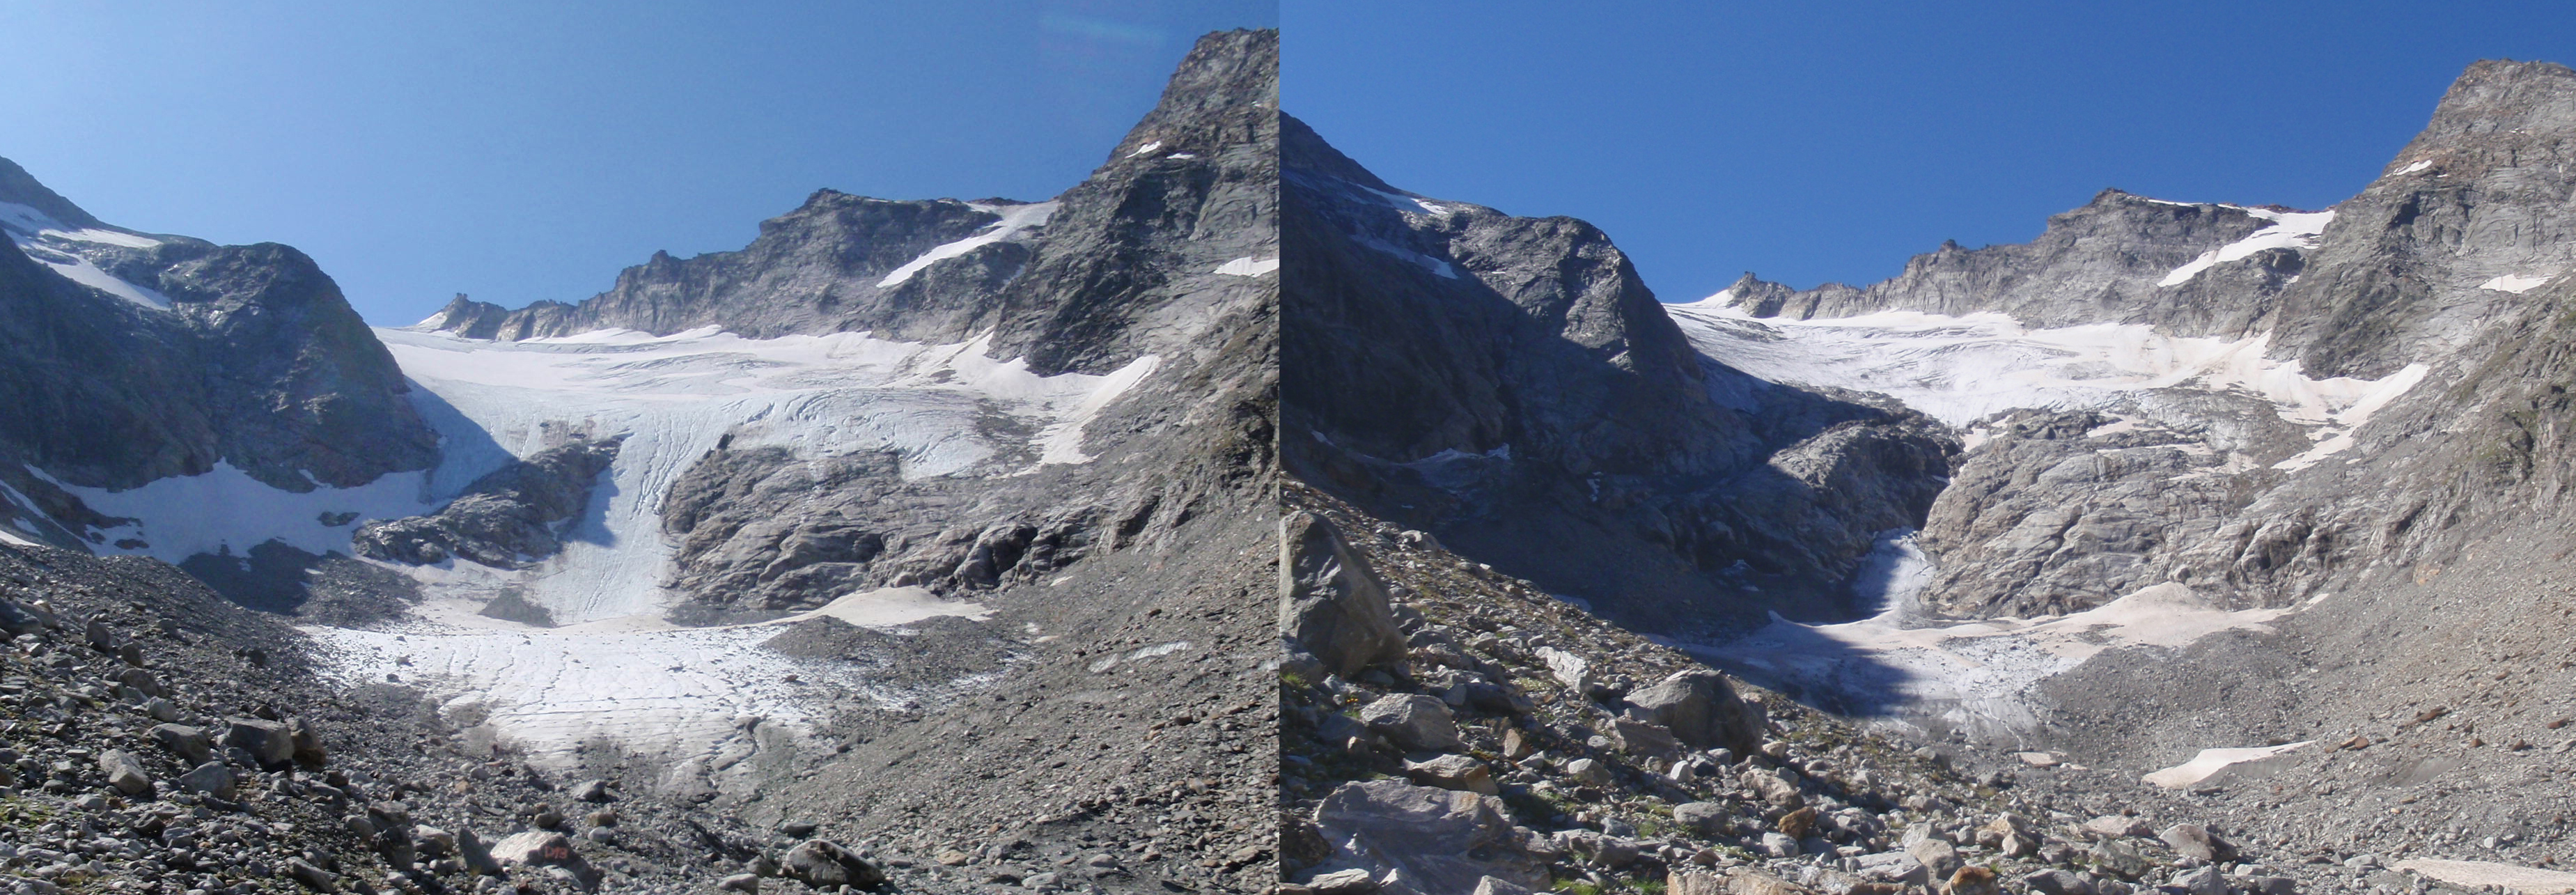 Länta Glacier: Small and Getting Smaller - related image preview